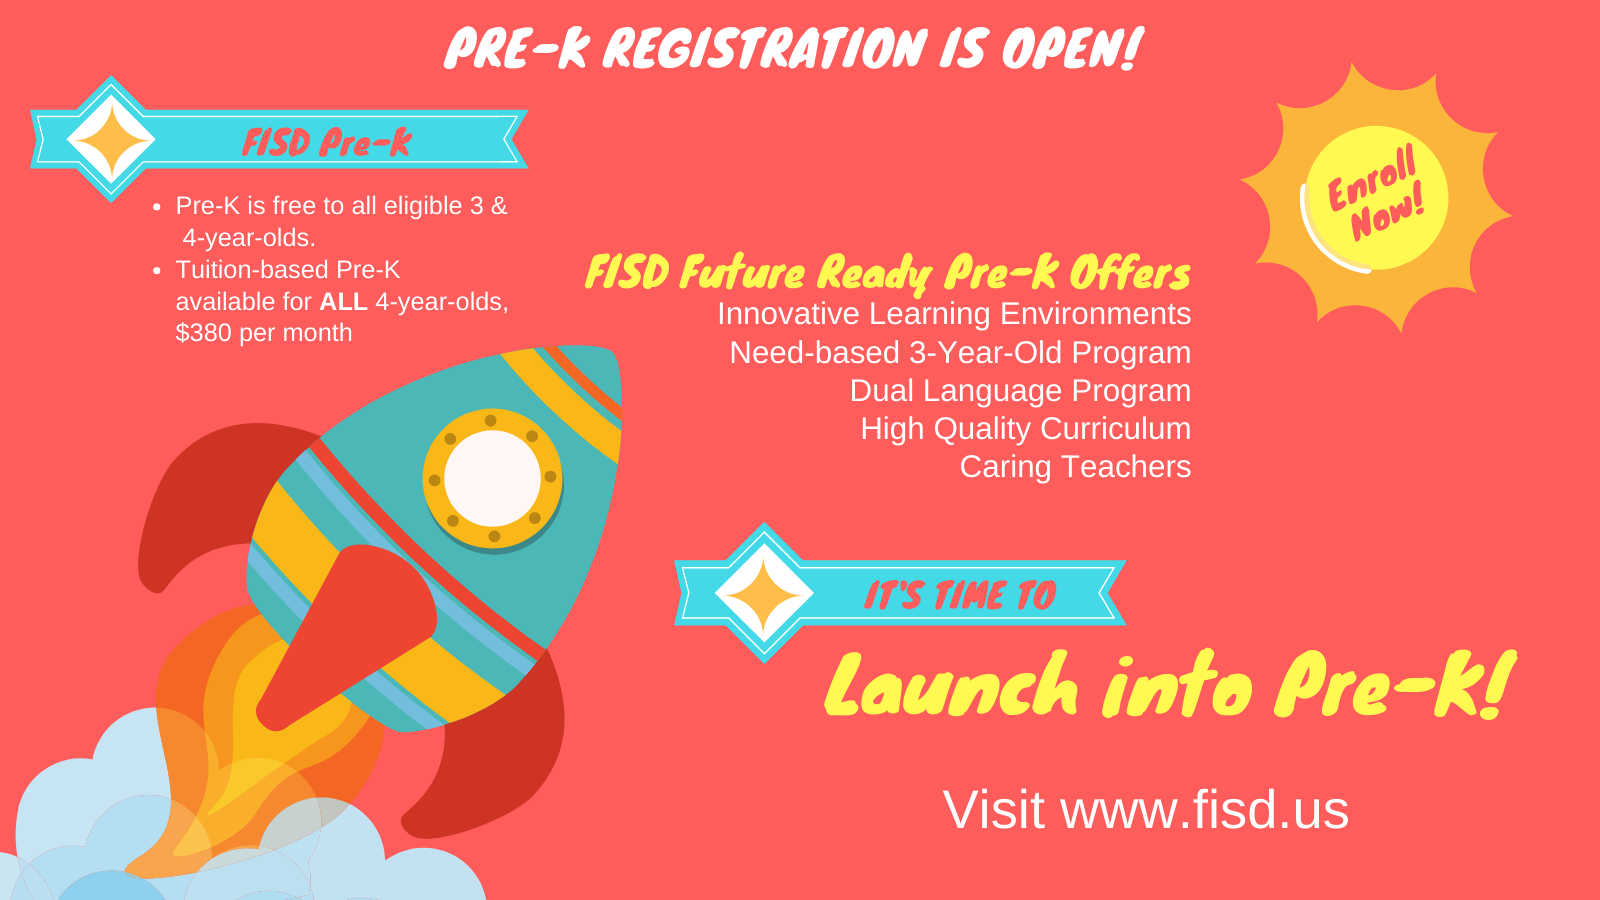 Pre K Registration Open Now Graphic with Rocket